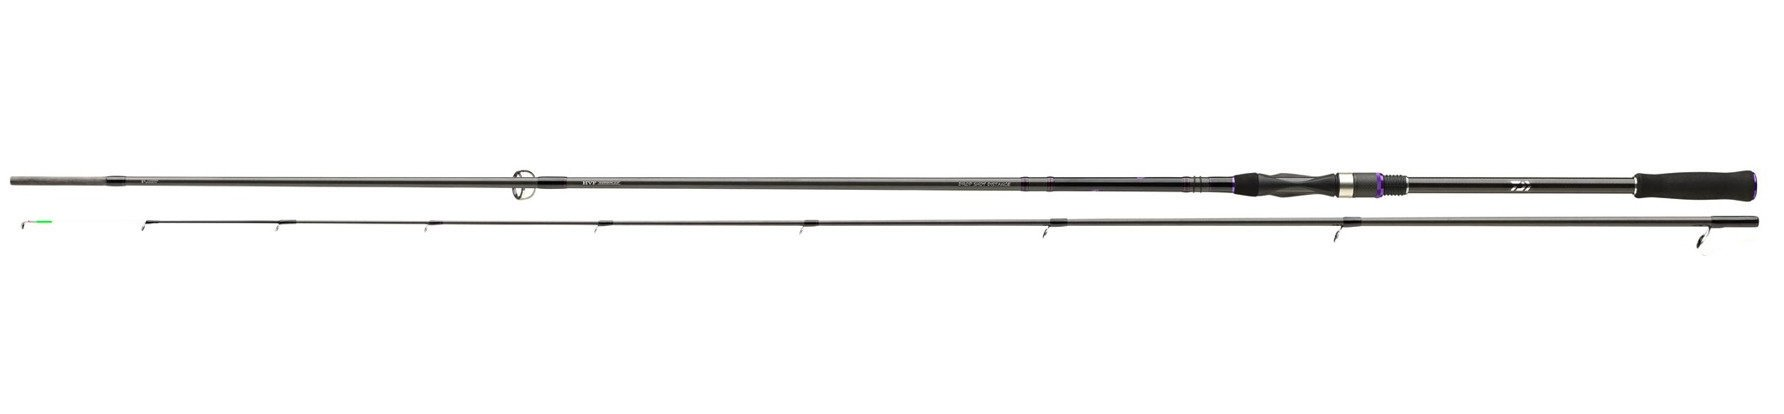 Daiwa Prorex XR Drop Shot  285cm 8-35g